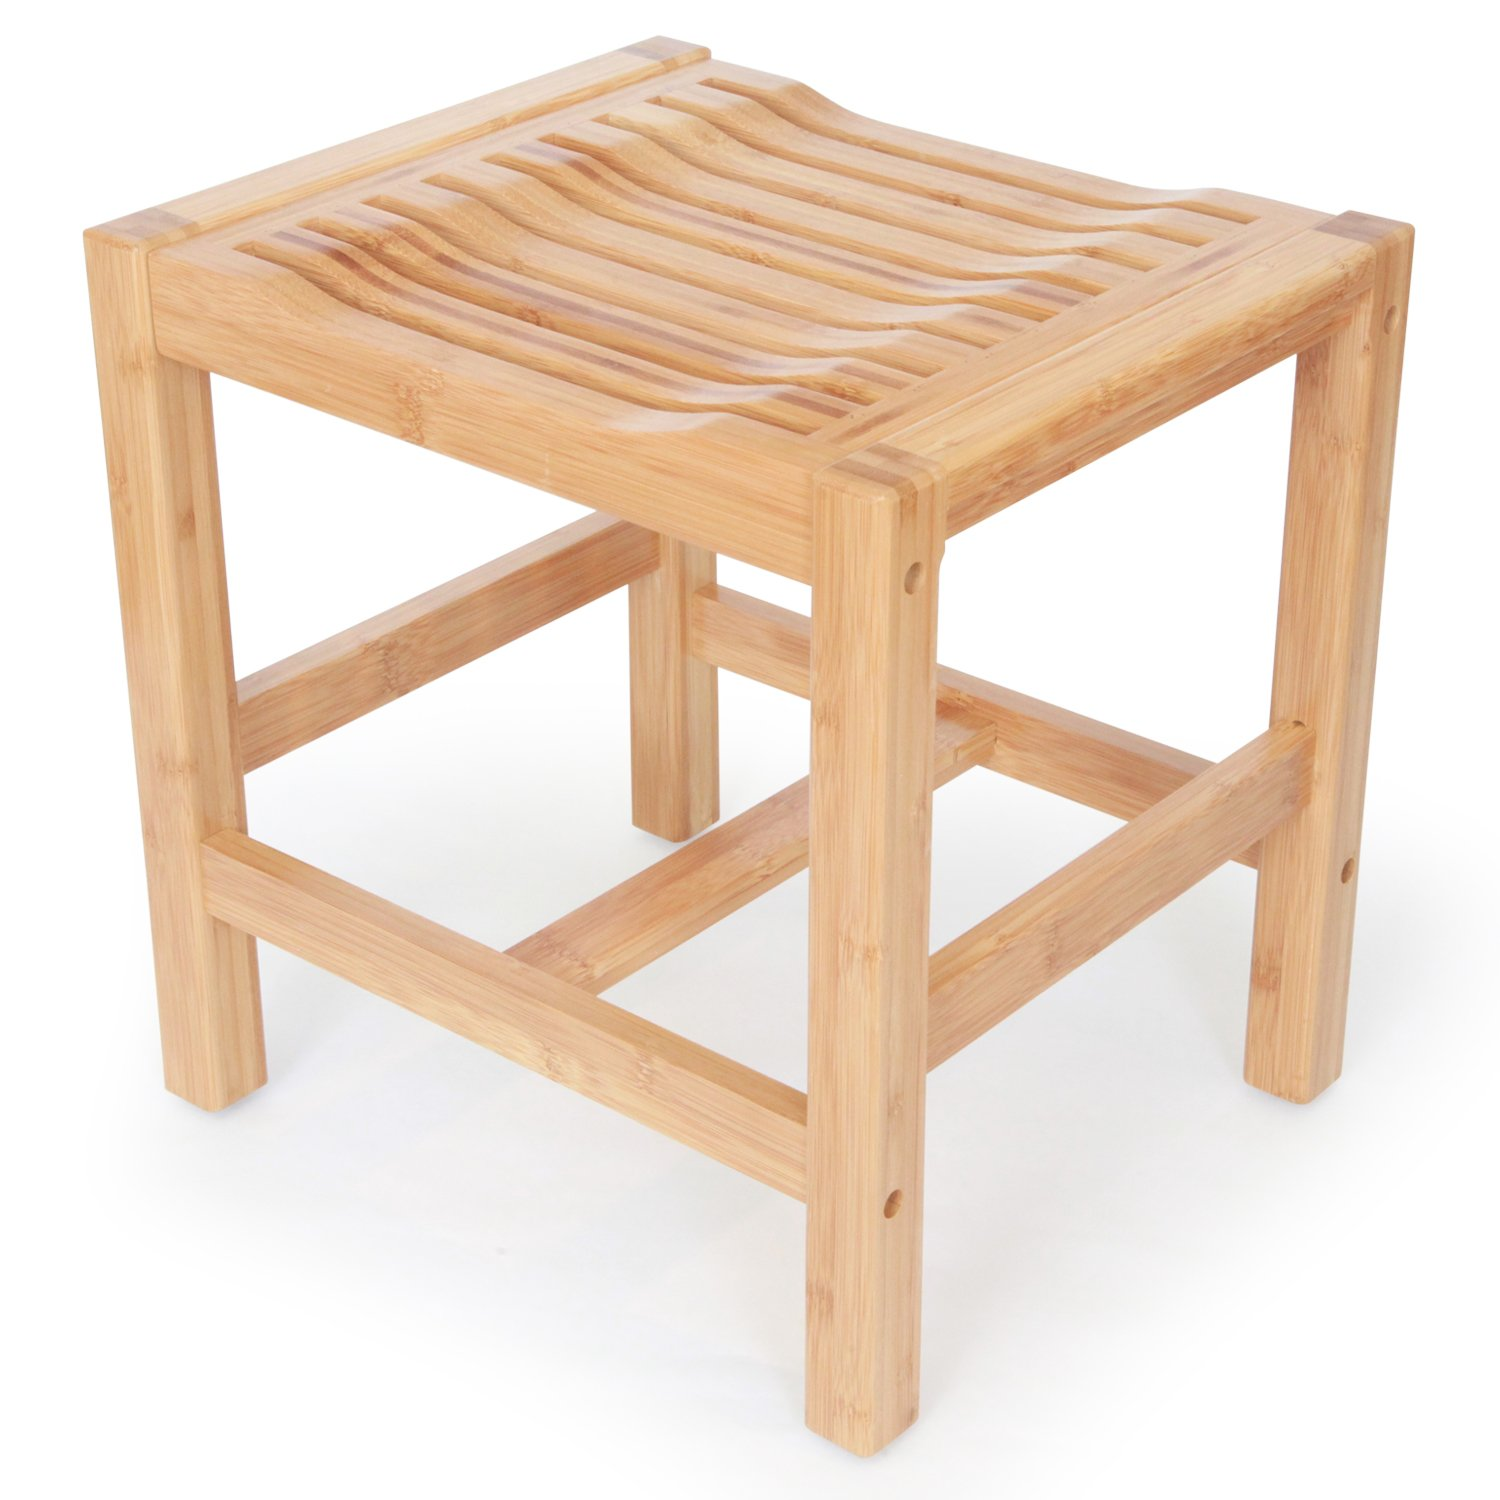 CDM product ToiletTree Products Deluxe 100% Wooden Natural Bamboo Shower and Bath Seat Bench big image